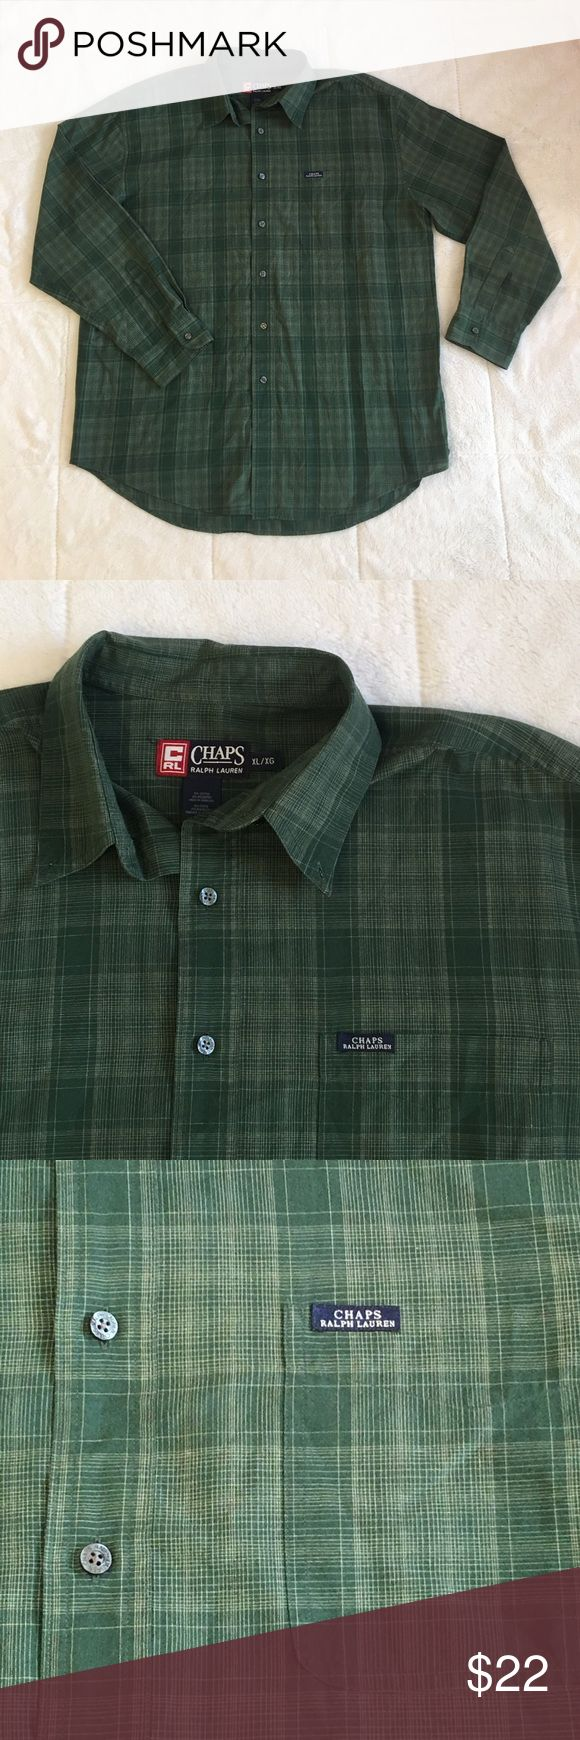 Chaps Ralph Lauren Green Button Up Dress Shirt XL Chaps Ralph Lauren Long Sleeve Button Up Dress Shirt. Men's Size XL Extra Large. Green With White Crossing Stripes. Lightly Worn. In Great Pre Owned Condition! Chaps Ralph Lauren  Shirts Casual Button Down Shirts